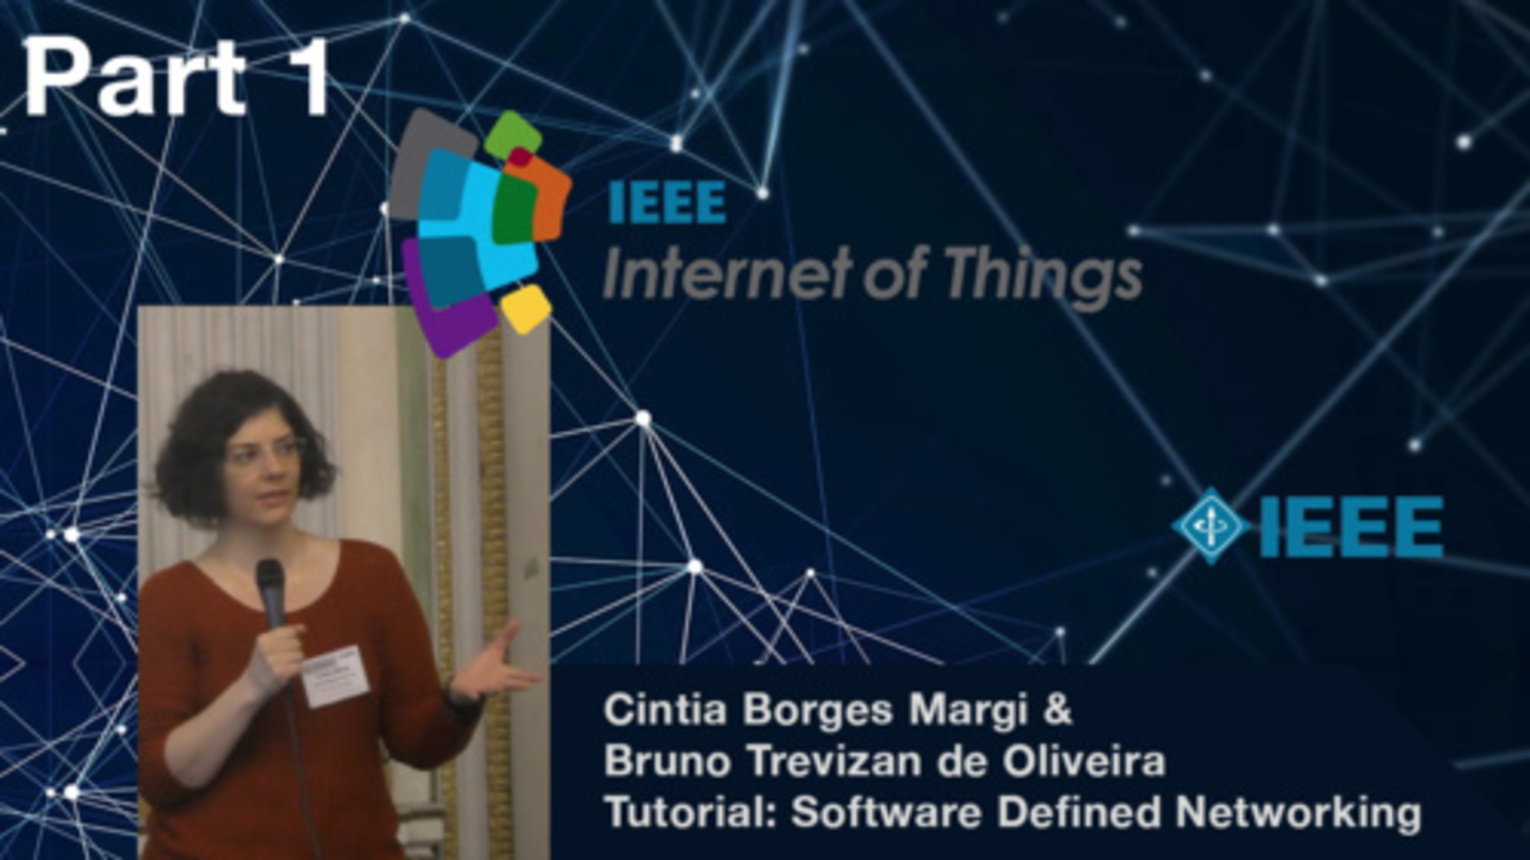 Part 1: Software-defined Networking in the Wireless Sensor Networks and the IoT Context - Bruno Trevizan de Oliveira and Cintia Borges Margi, IEEE WF-IoT 2015